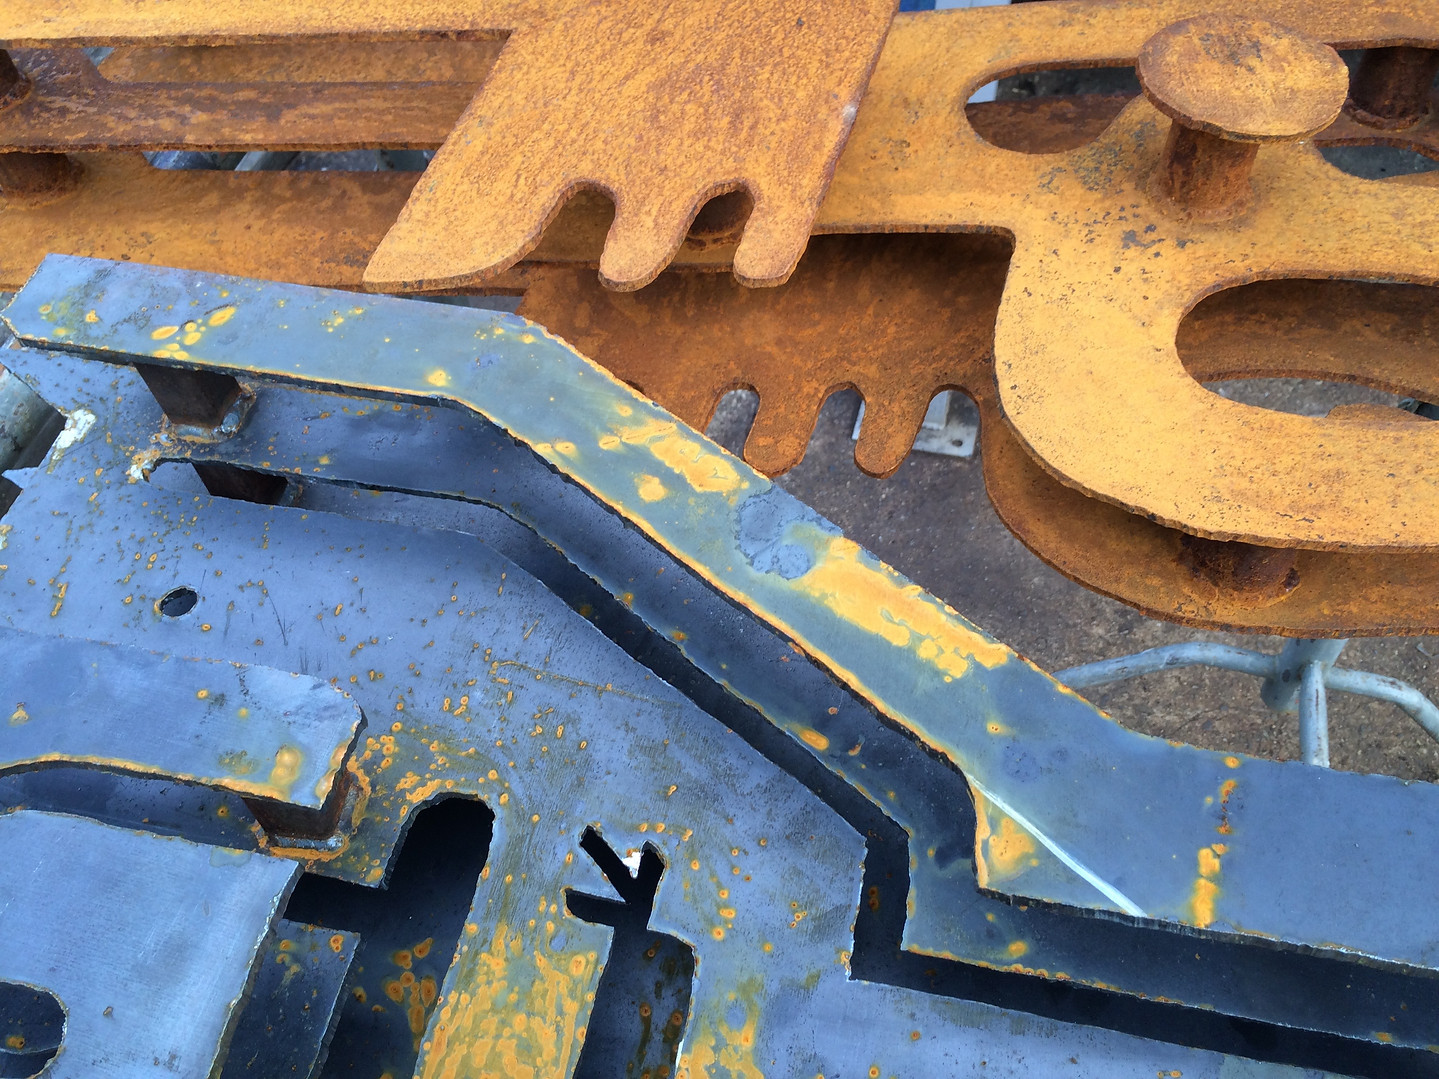 Detail of catching rust